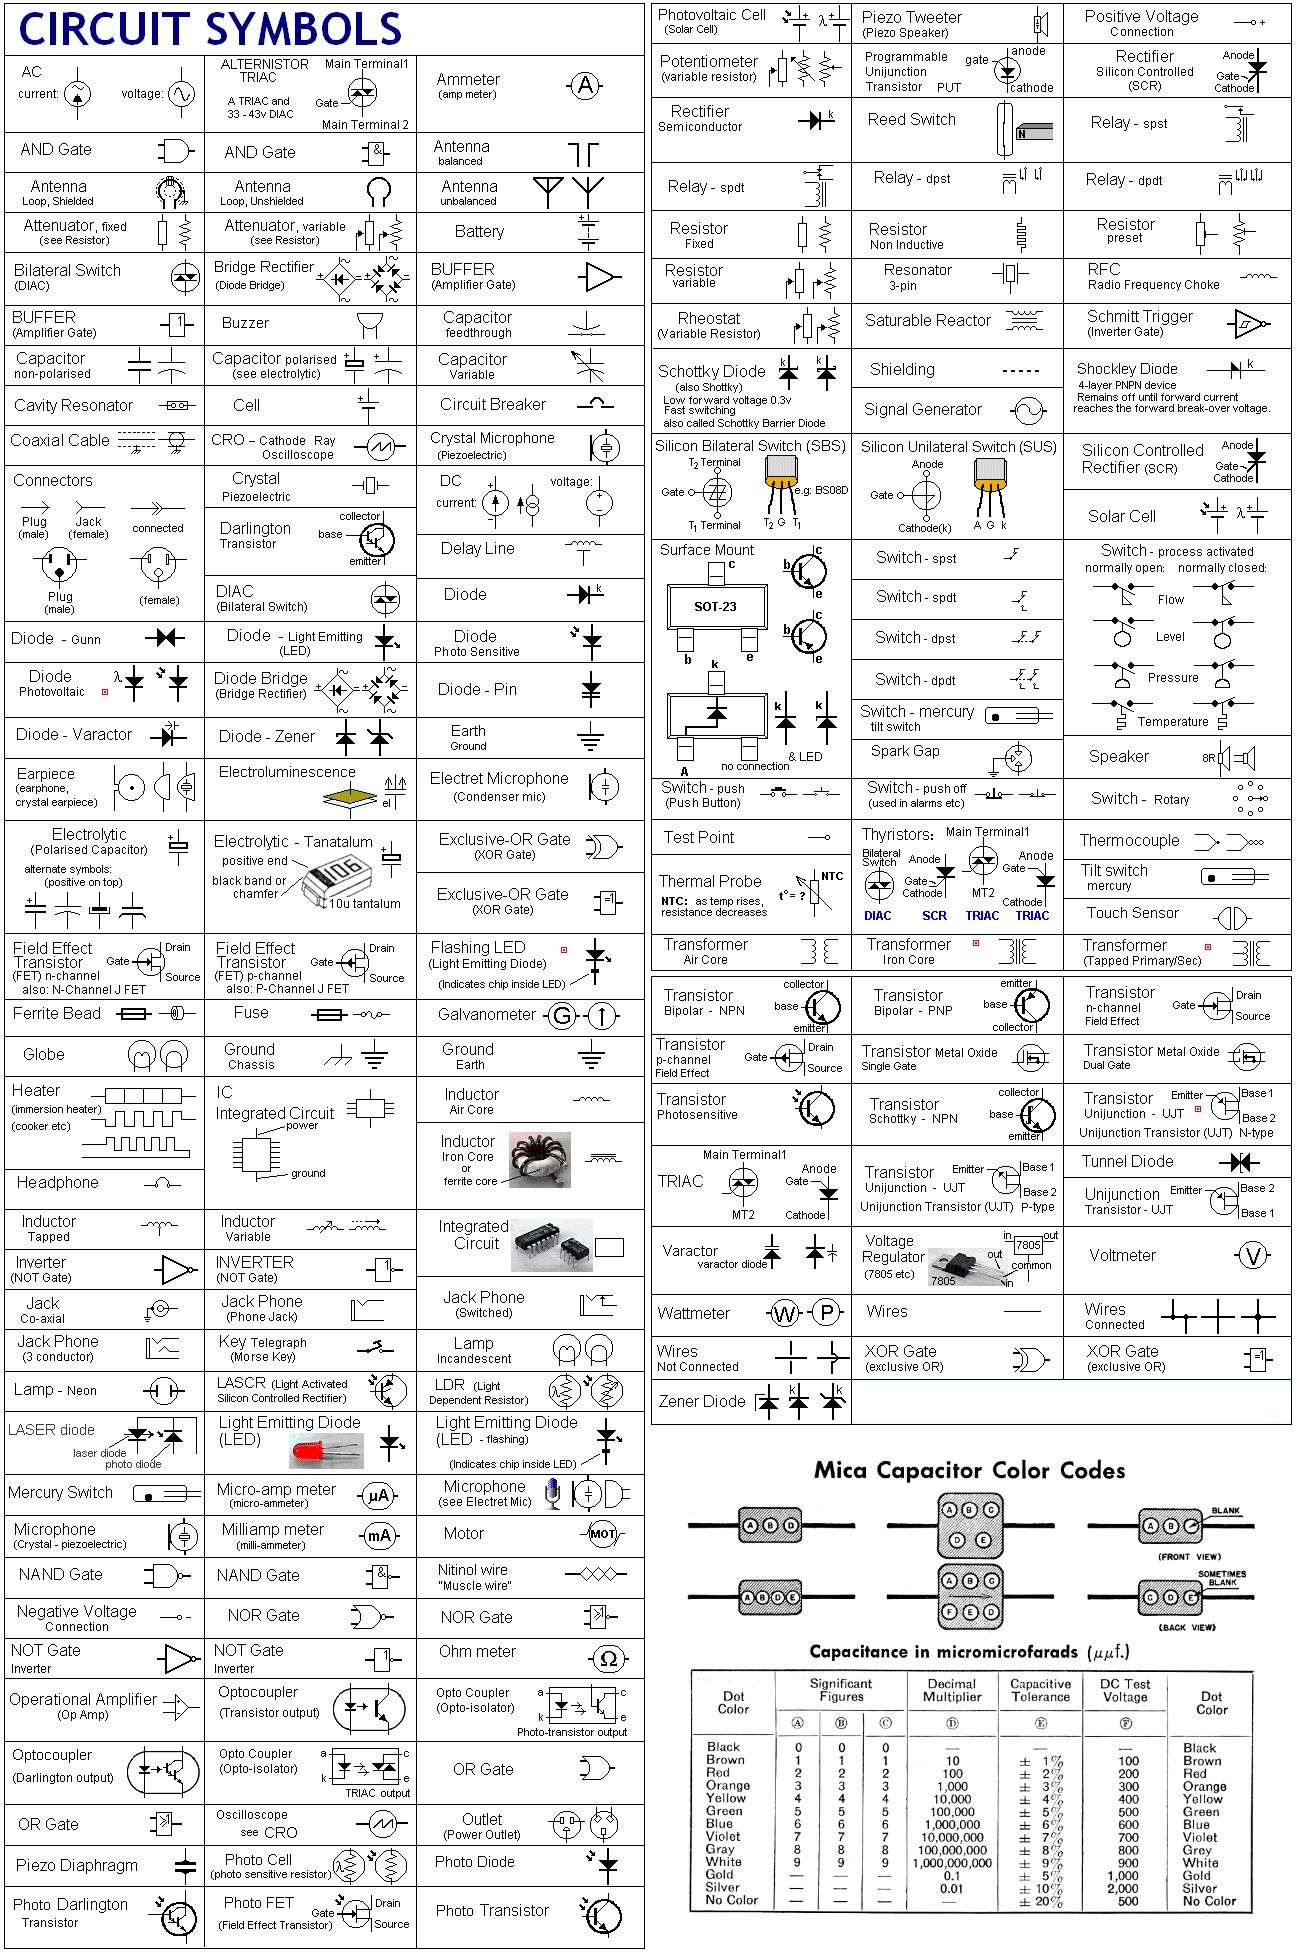 Motor Control Wiring Diagram Symbols Starter Generator Images About Schematic On Pinterest Buzzer